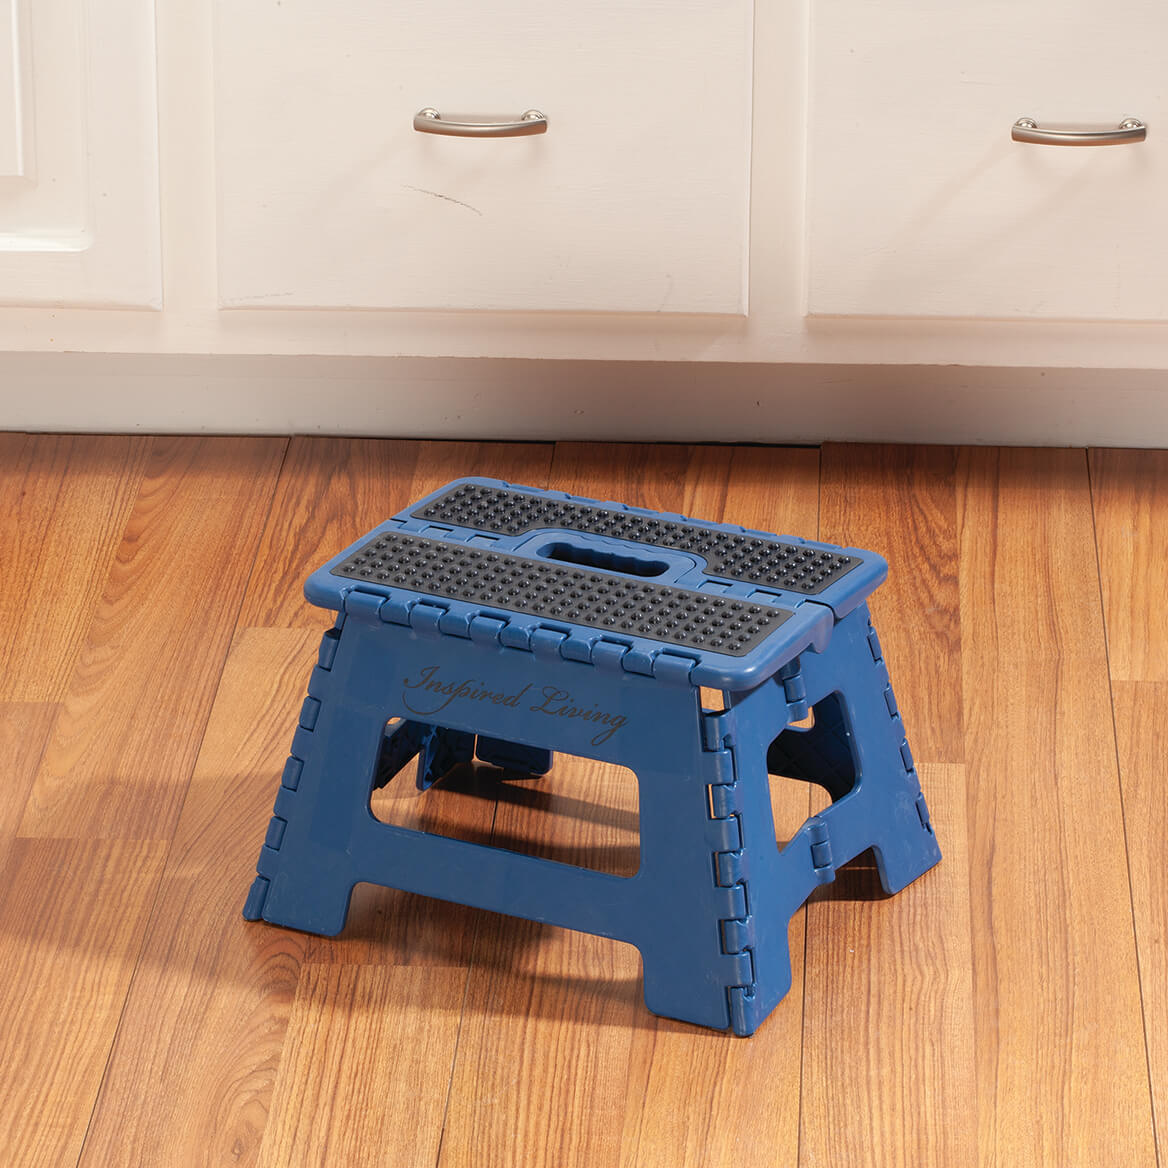 Samsonite 9 Quot Folding Step Stool Folding Stool Miles